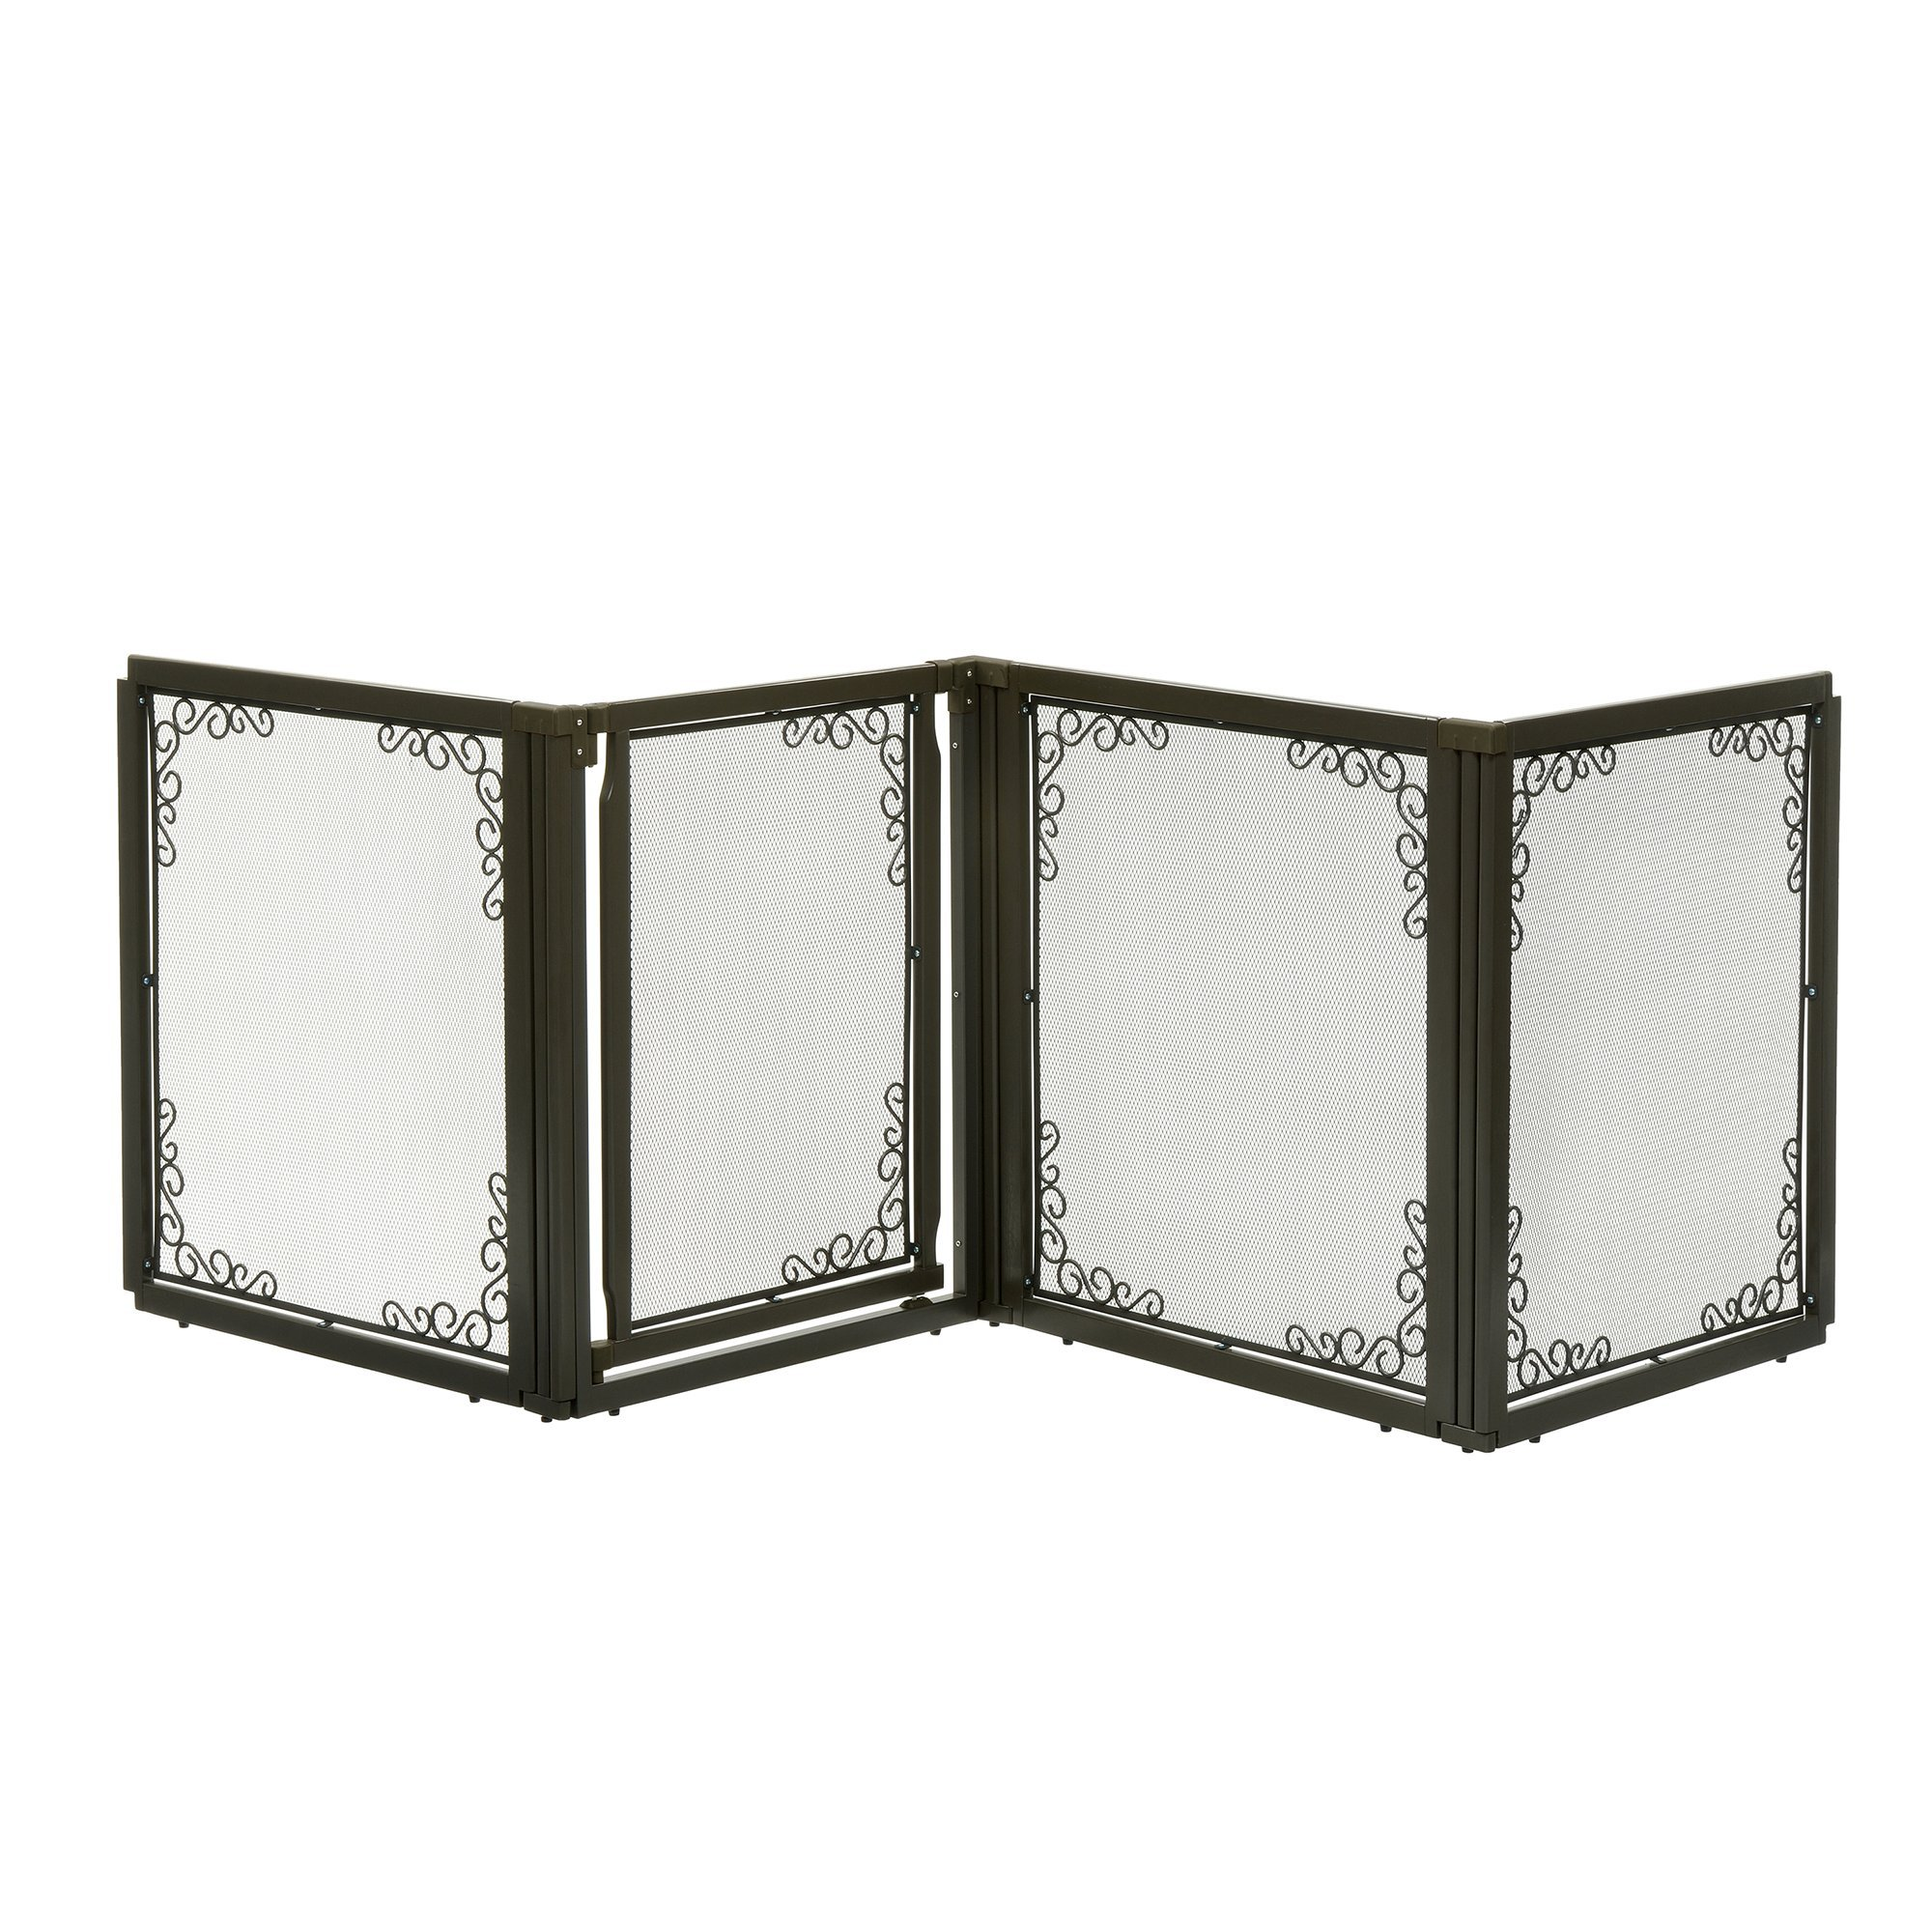 Richell Convertible Elite Mesh Pet Gate 4 Panel by Richell